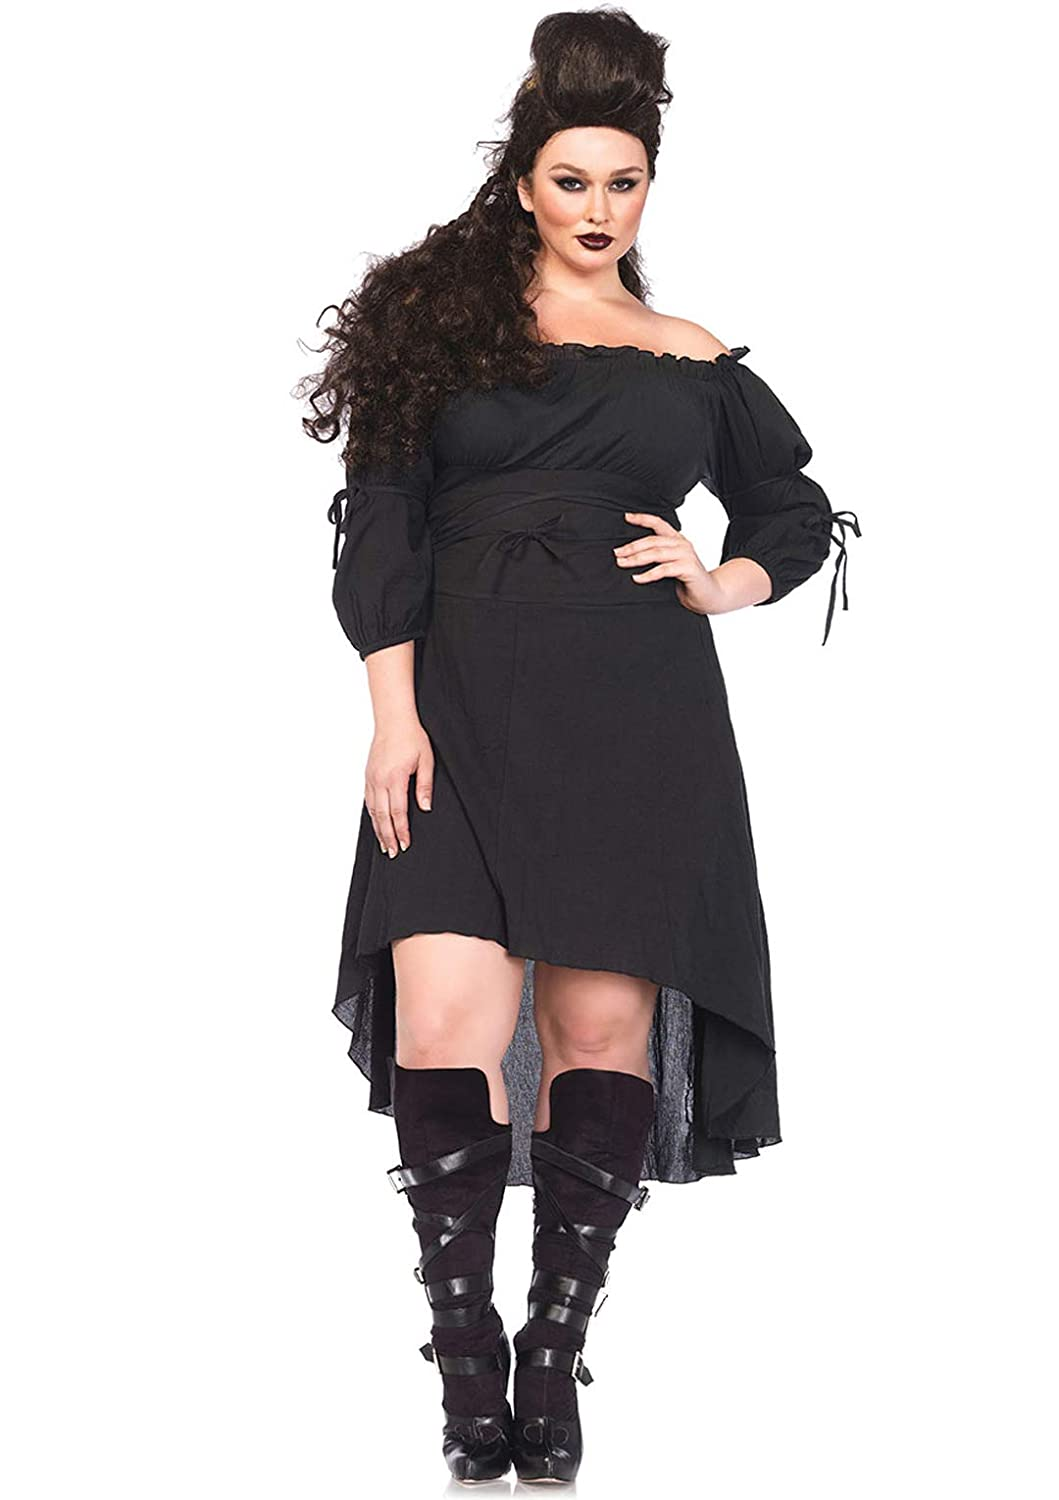 Steampunk Plus Size Clothing & Costumes Leg Avenue Womens High Low Peasant Dress Costume $61.25 AT vintagedancer.com